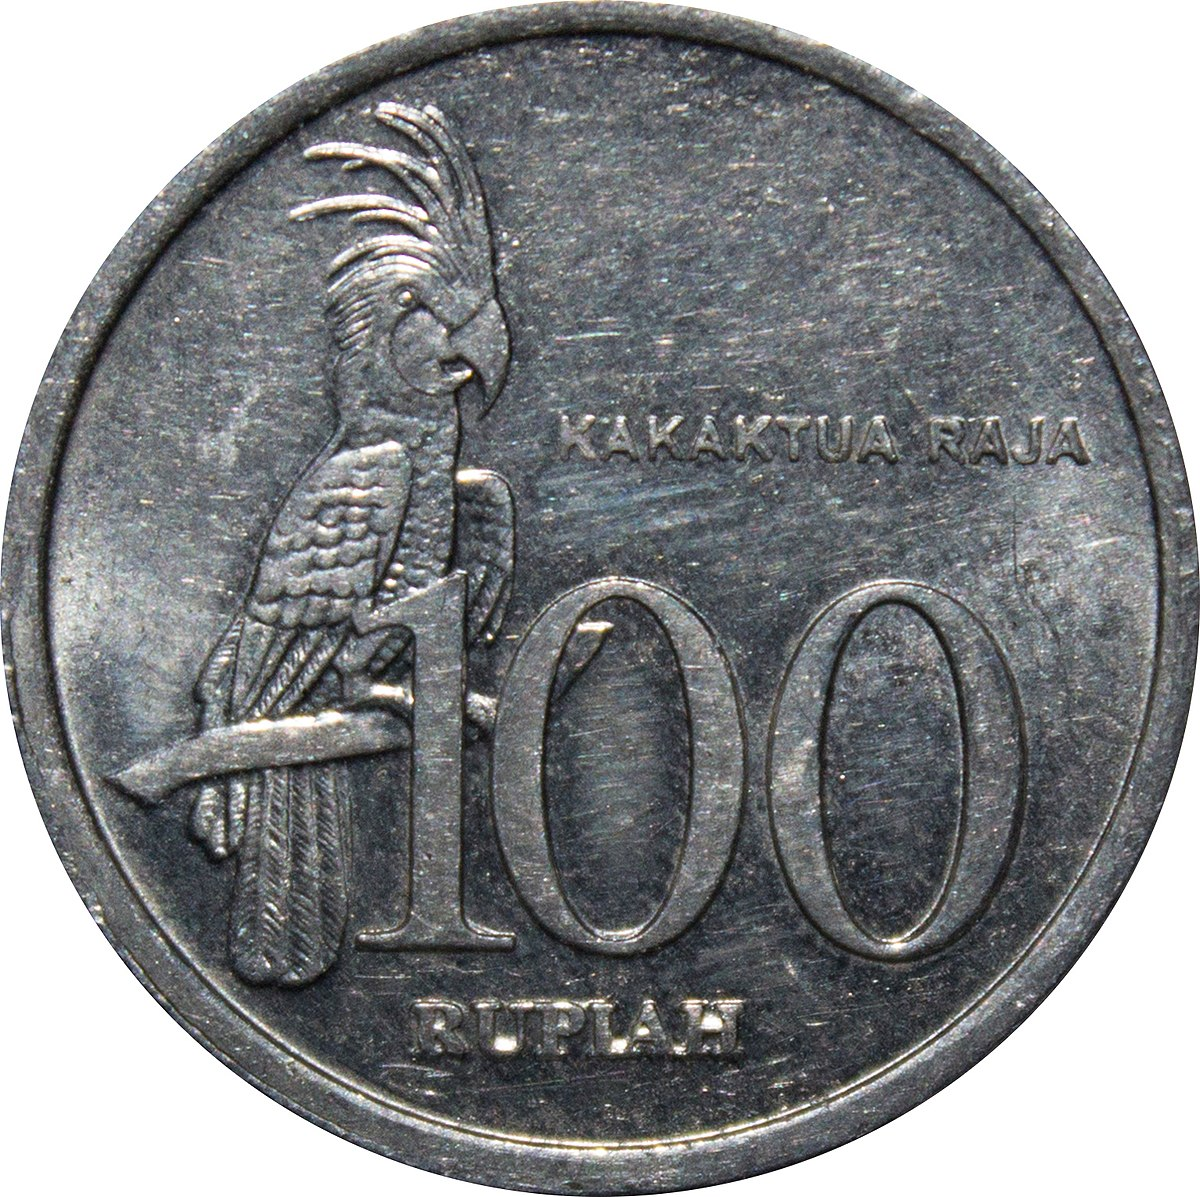 File:100 rupiah coin reverse.jpg - Wikimedia Commons